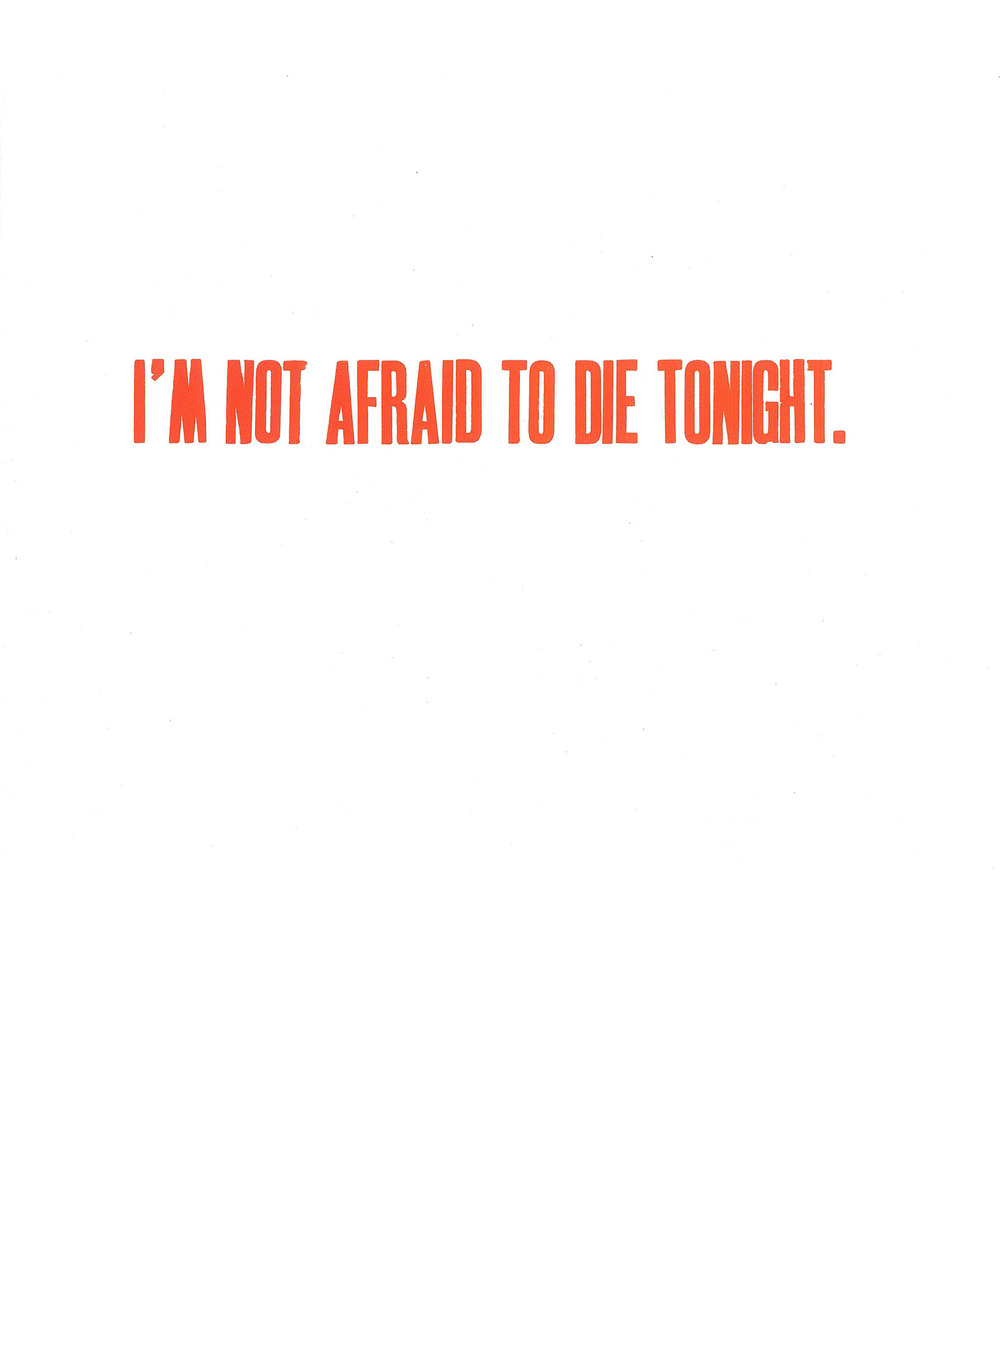 I'm not afraid to die tonight.